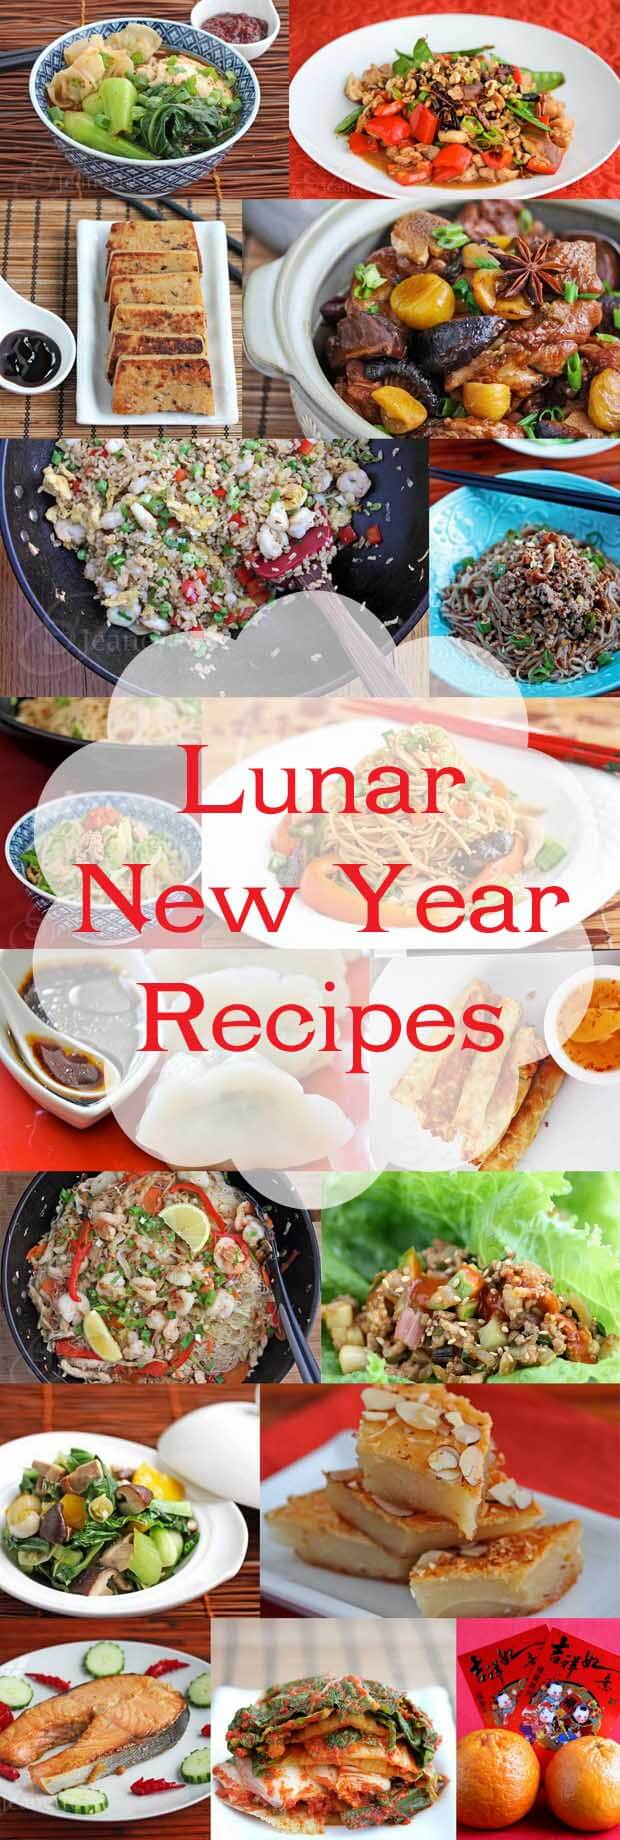 20+ Lunar and Chinese New Year Recipes